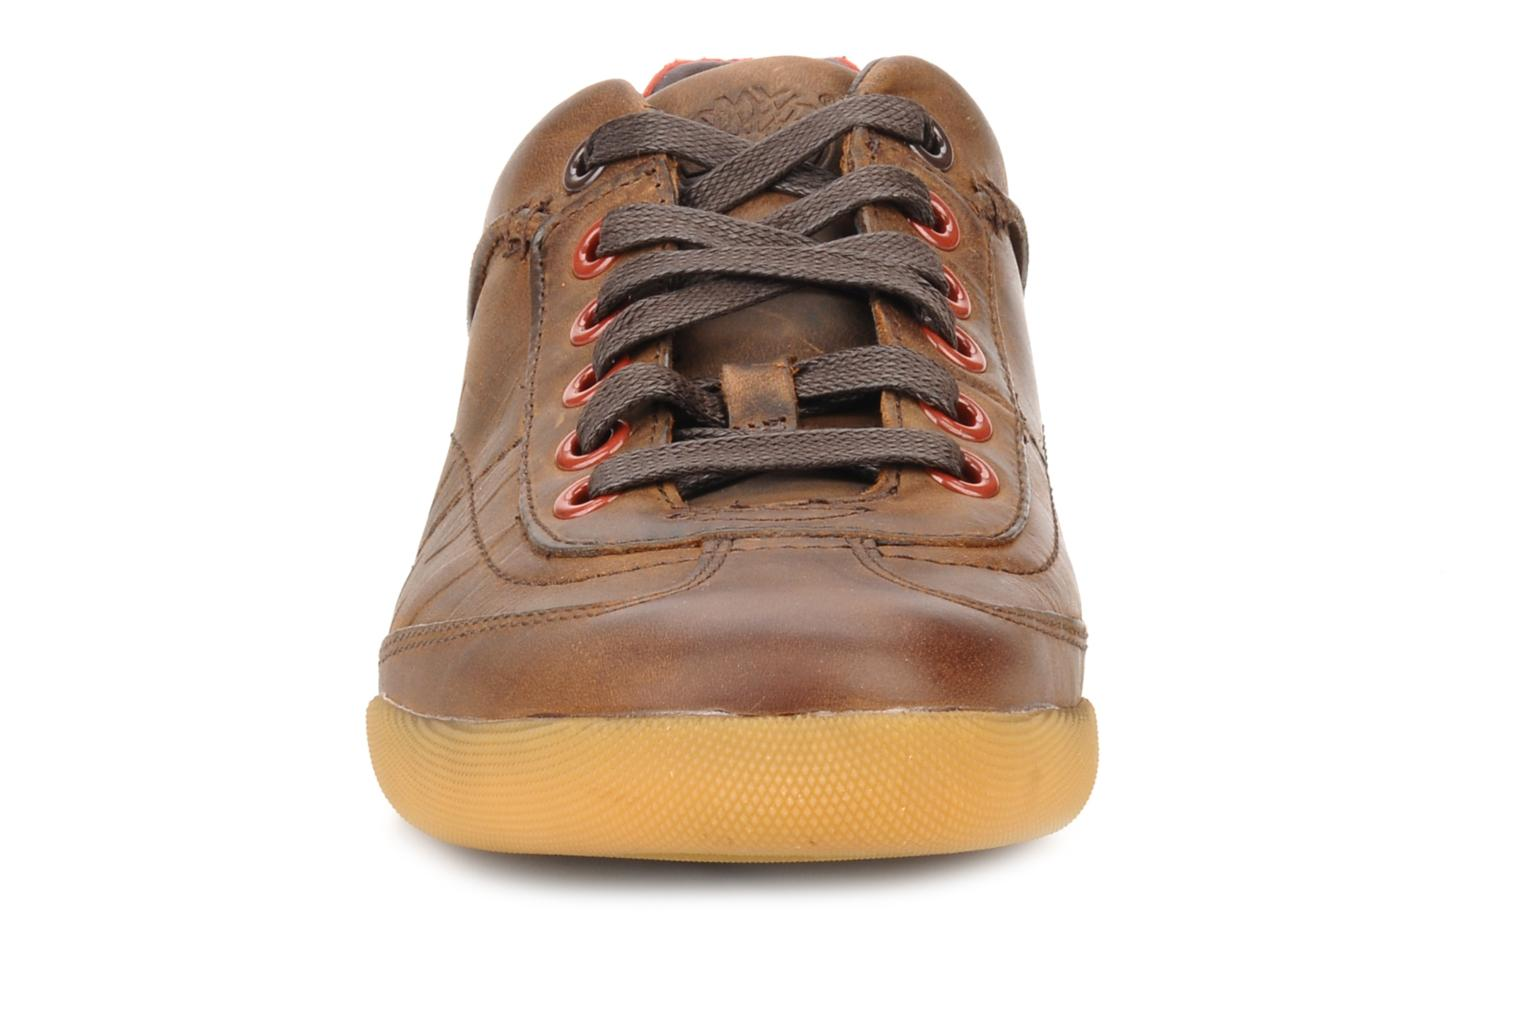 City adventure split cup sole butt seam ox Gaucho roughcut